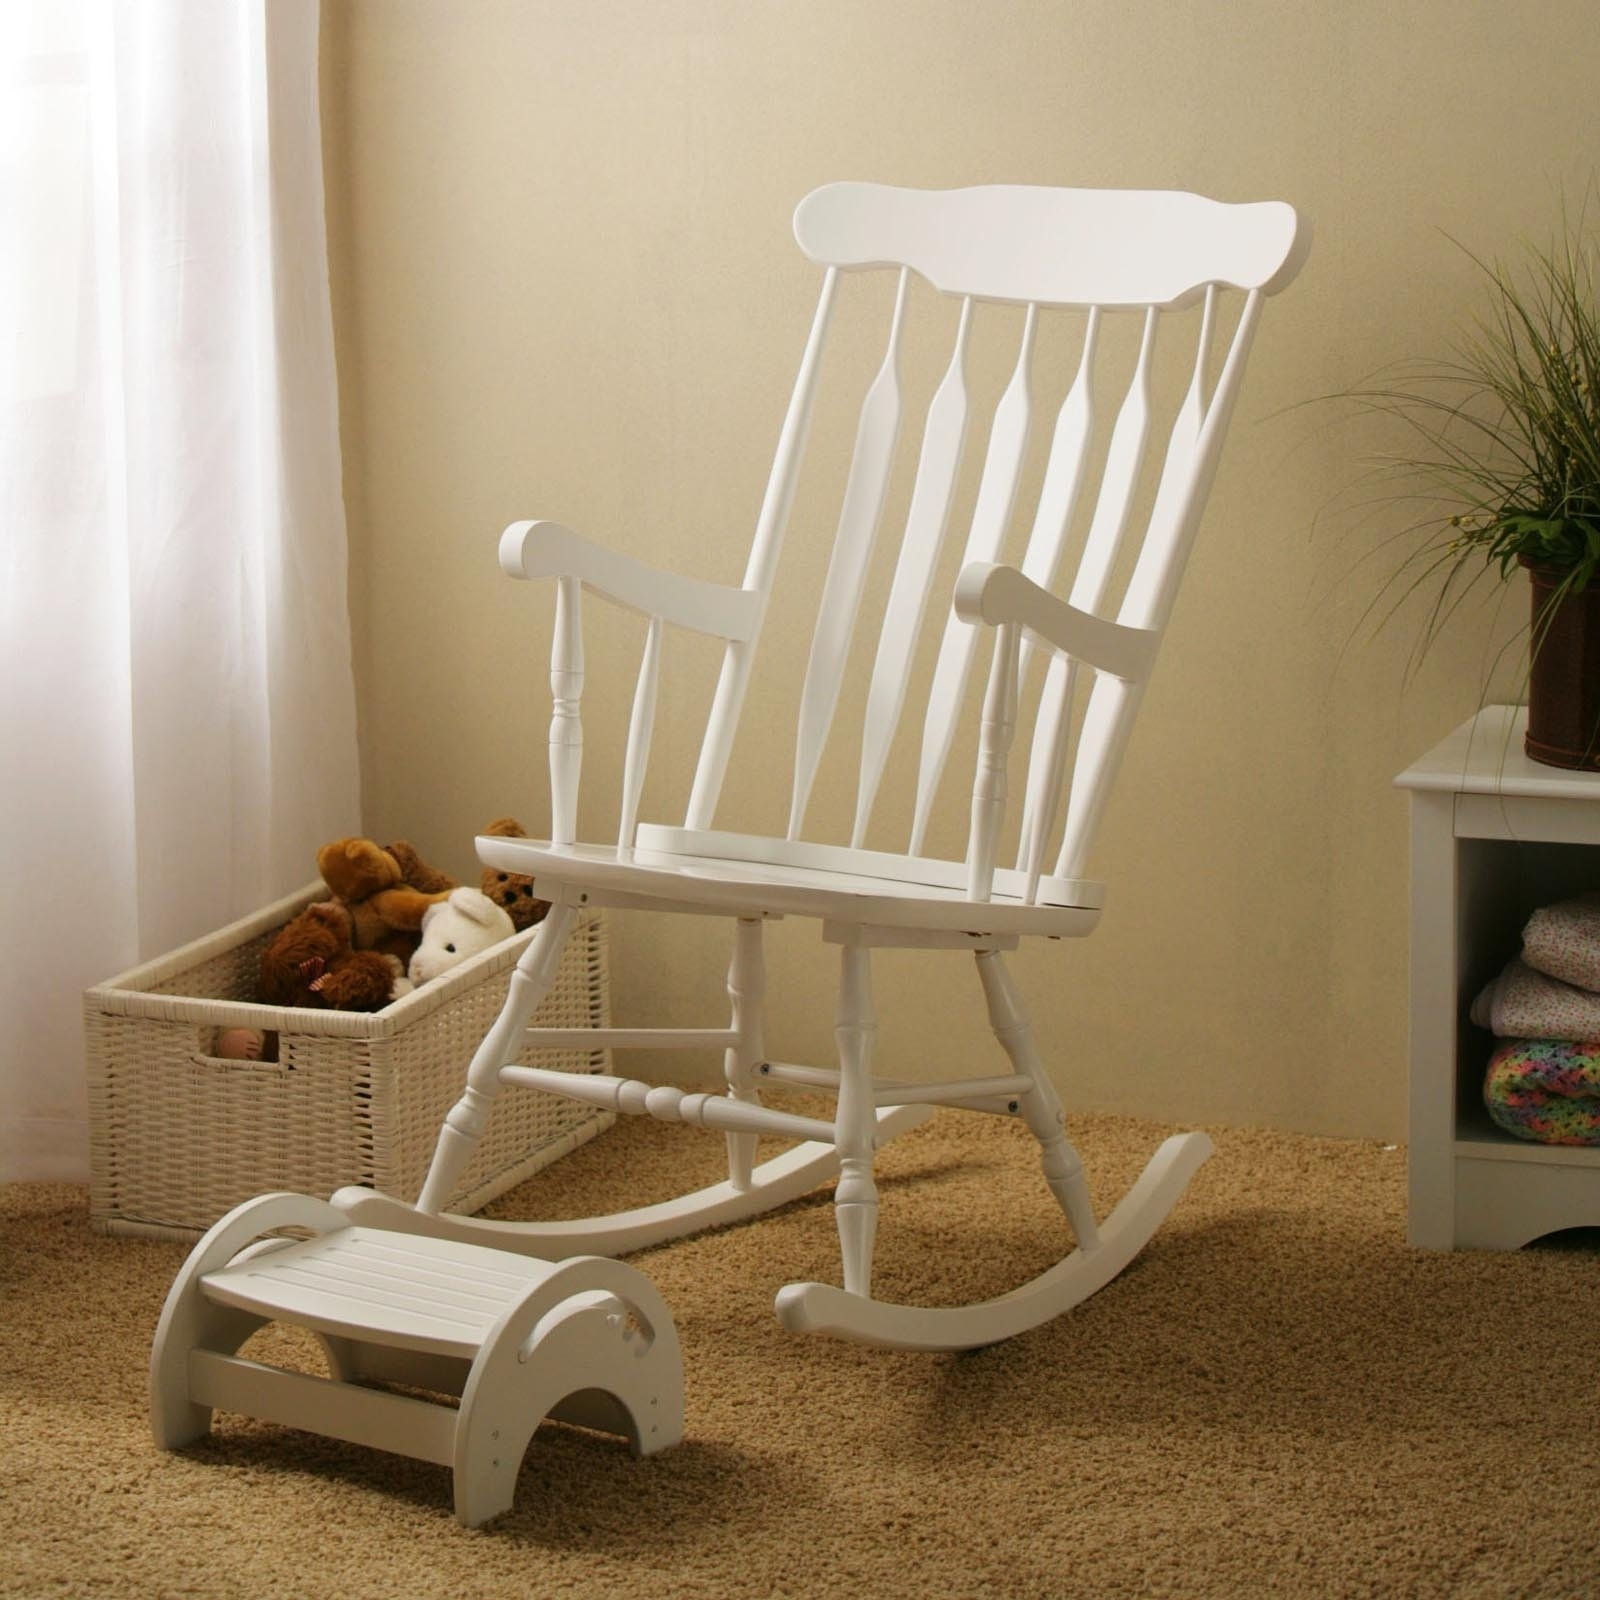 Indoor Wicker Rocking Chairs Regarding Most Popular Furniture: Wicker Rocking Chair Design Ideas (View 11 of 20)